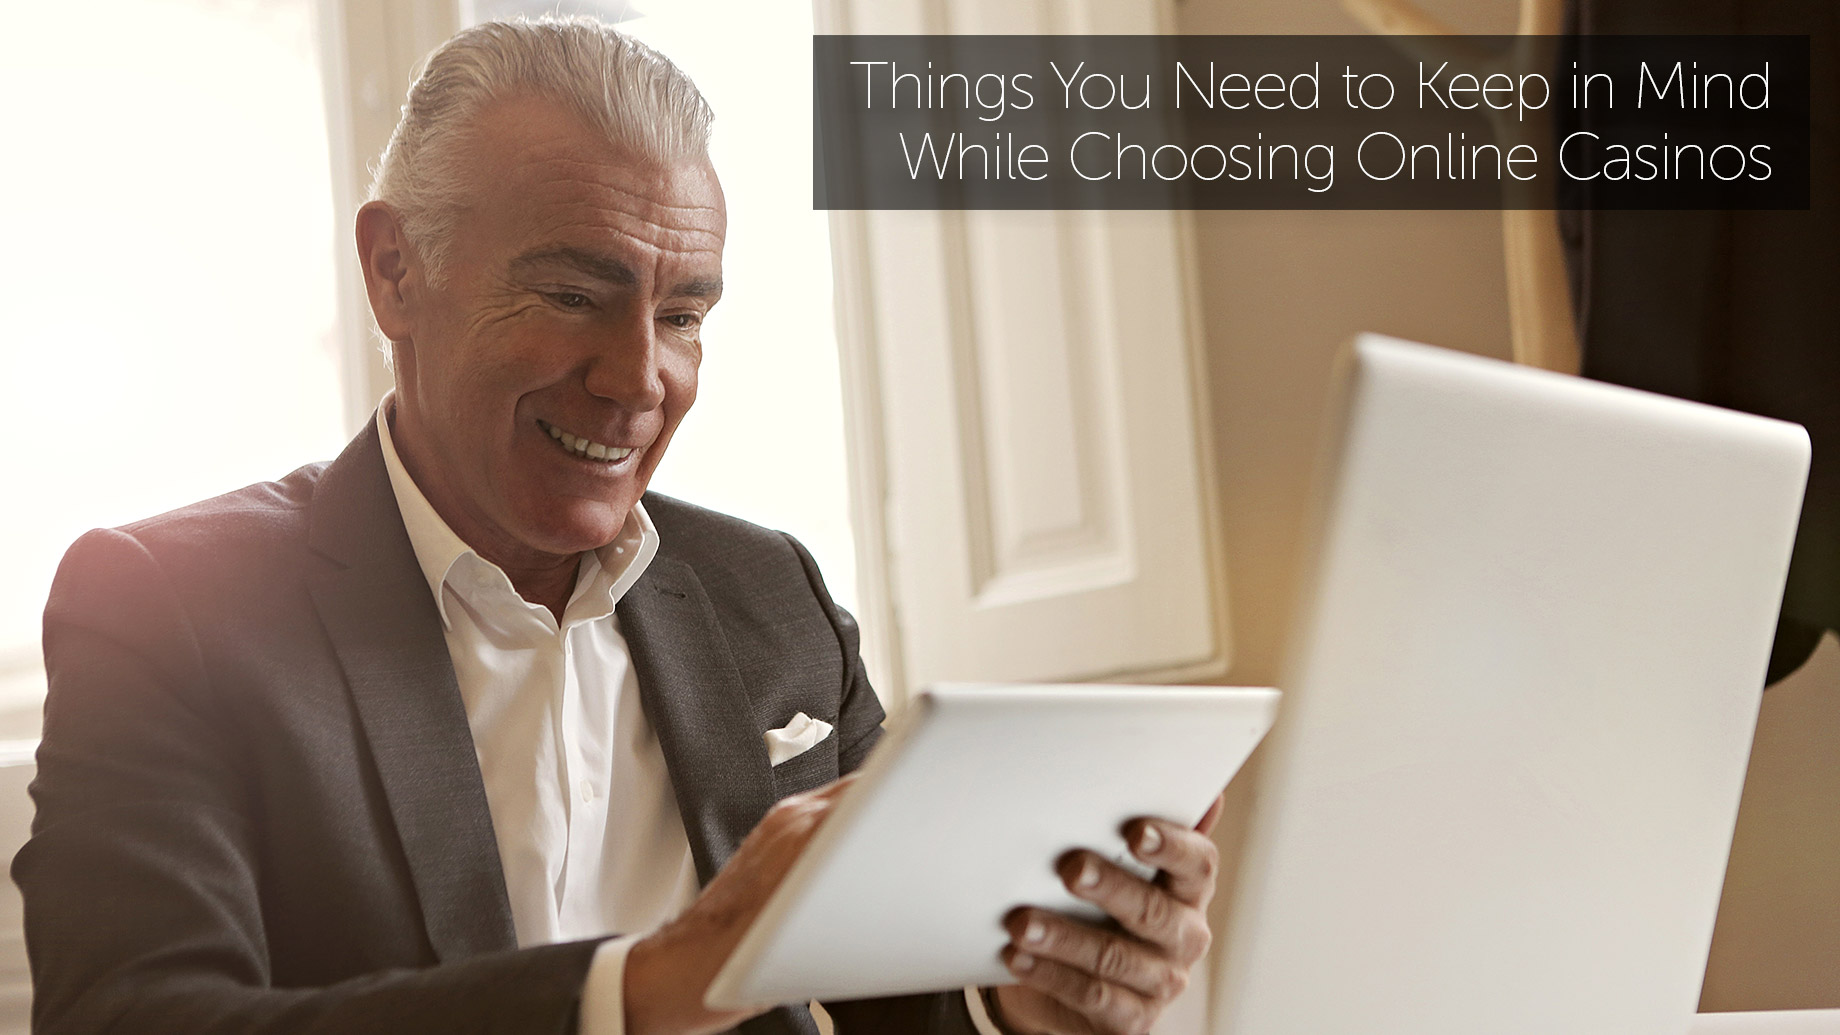 Things You Need to Keep in Mind While Choosing Online Casinos